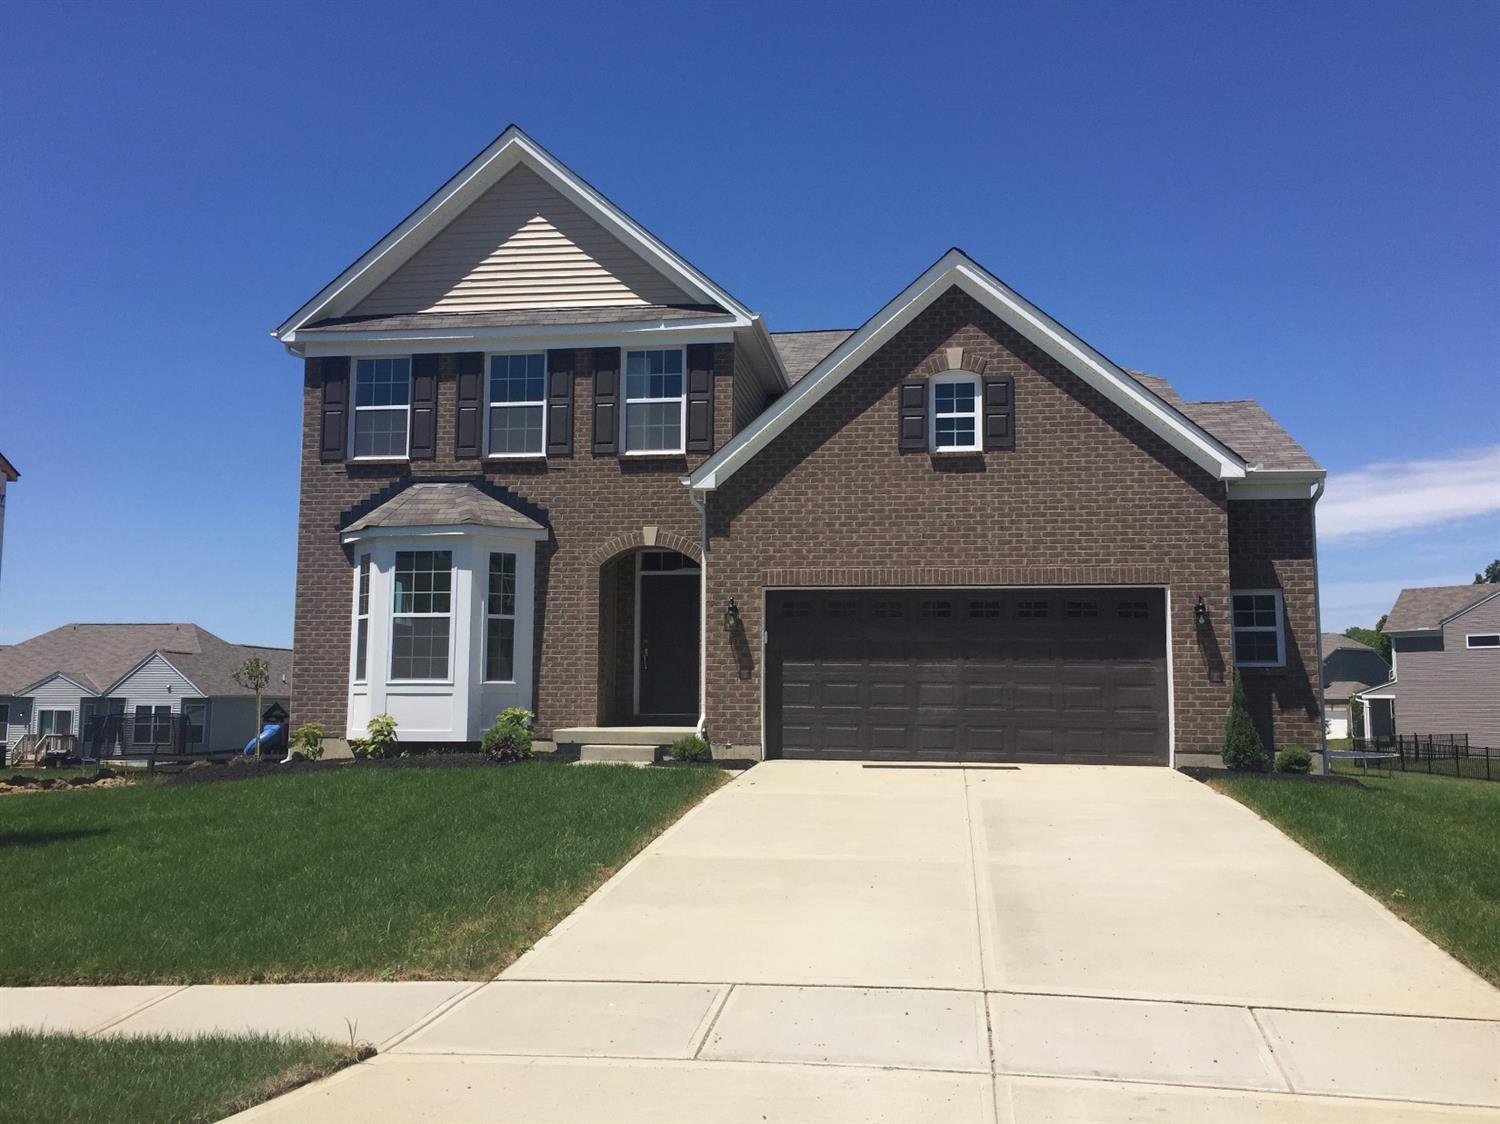 Property for sale at 4112 Bluestem Drive Unit: 324, Turtle Creek Twp,  OH 45036